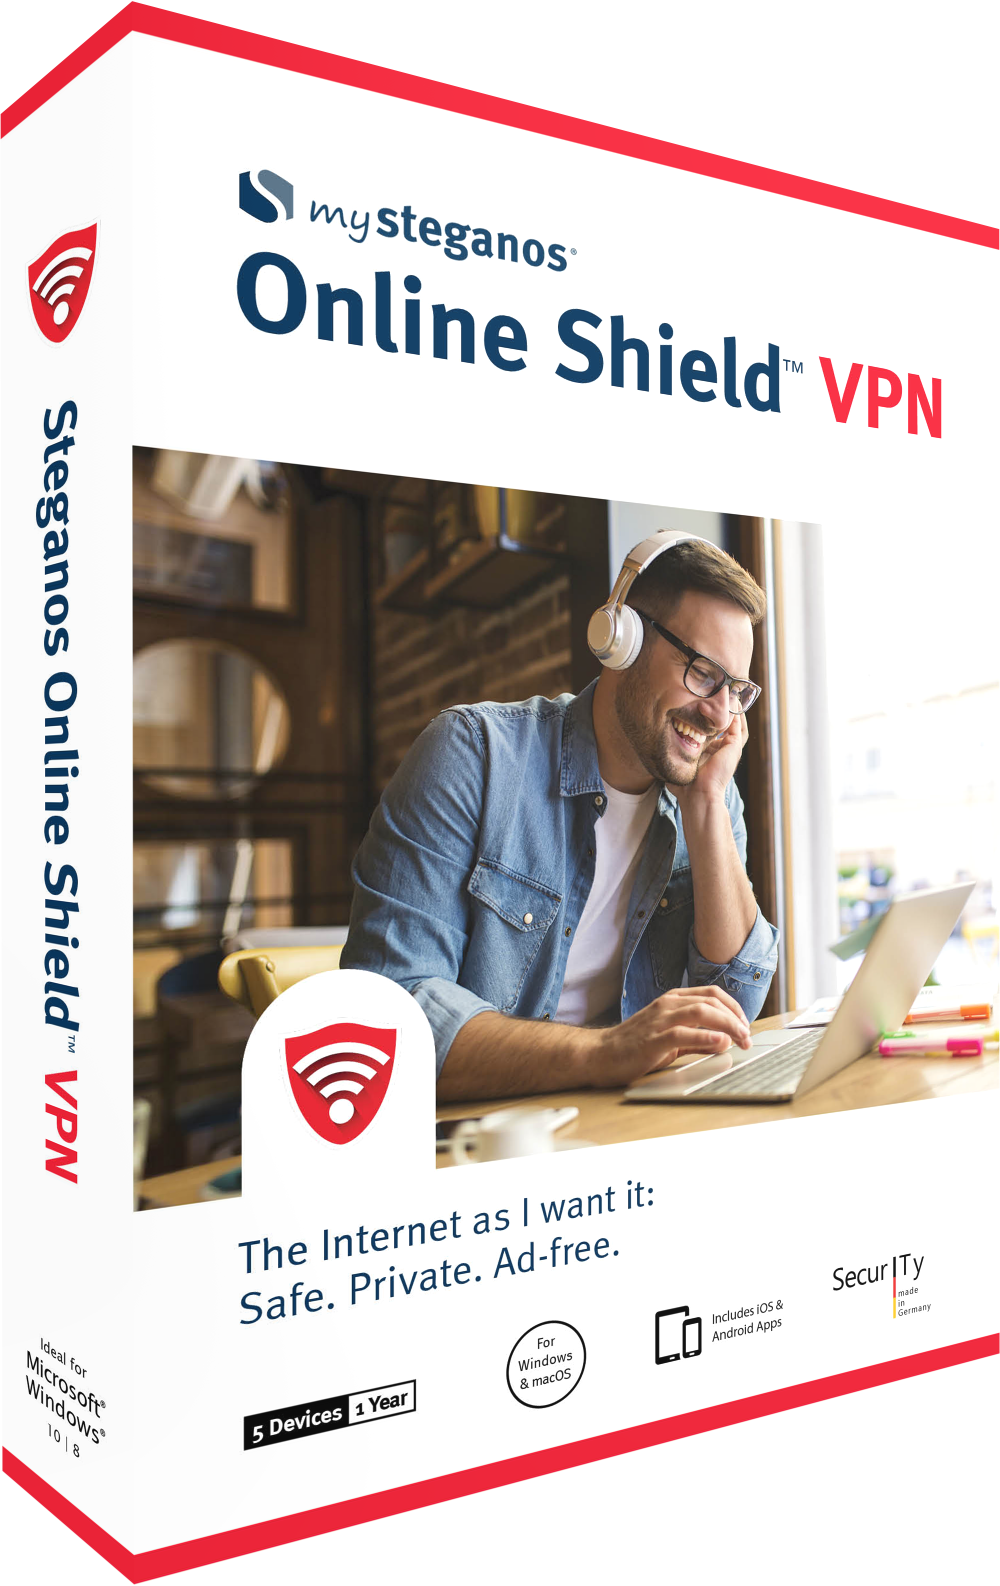 mySteganos Online Shield VPN img related